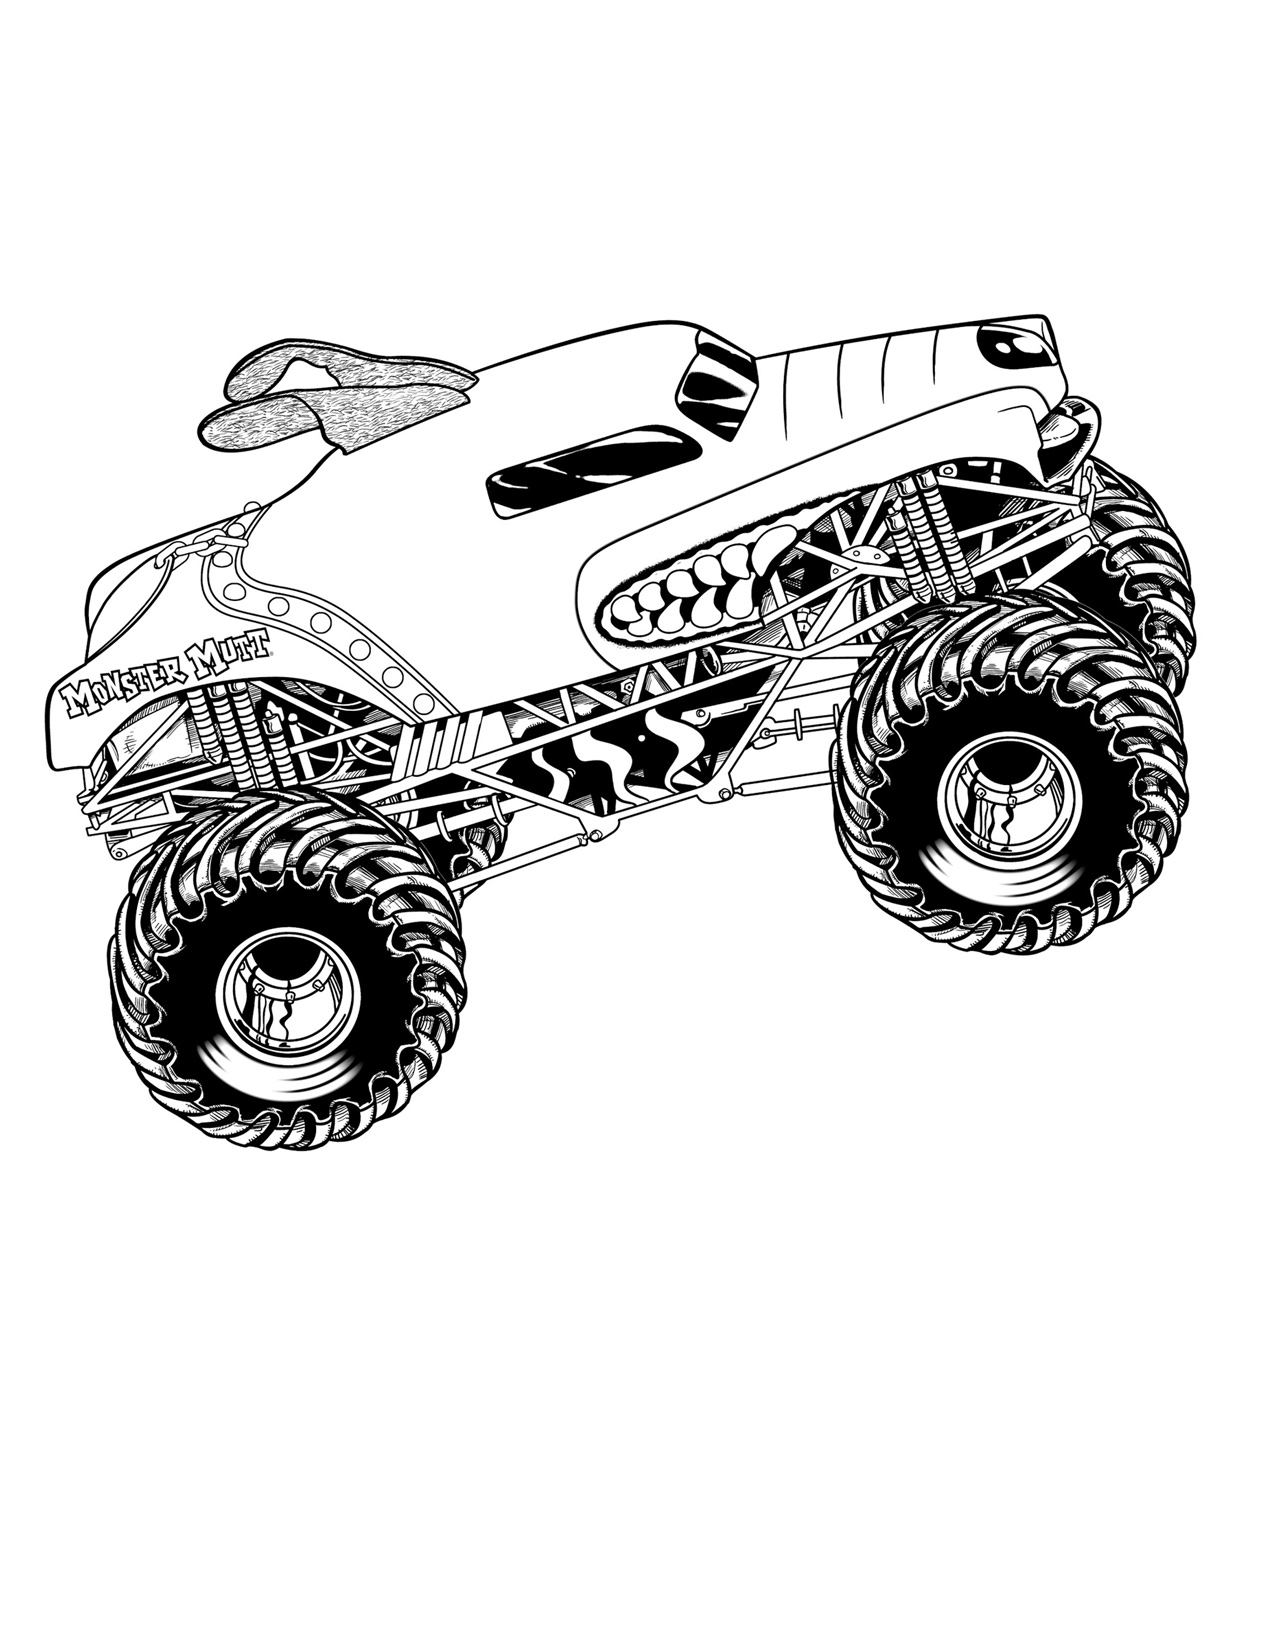 monster truck coloring sheets monster truck coloring pages to download and print for free monster truck coloring sheets